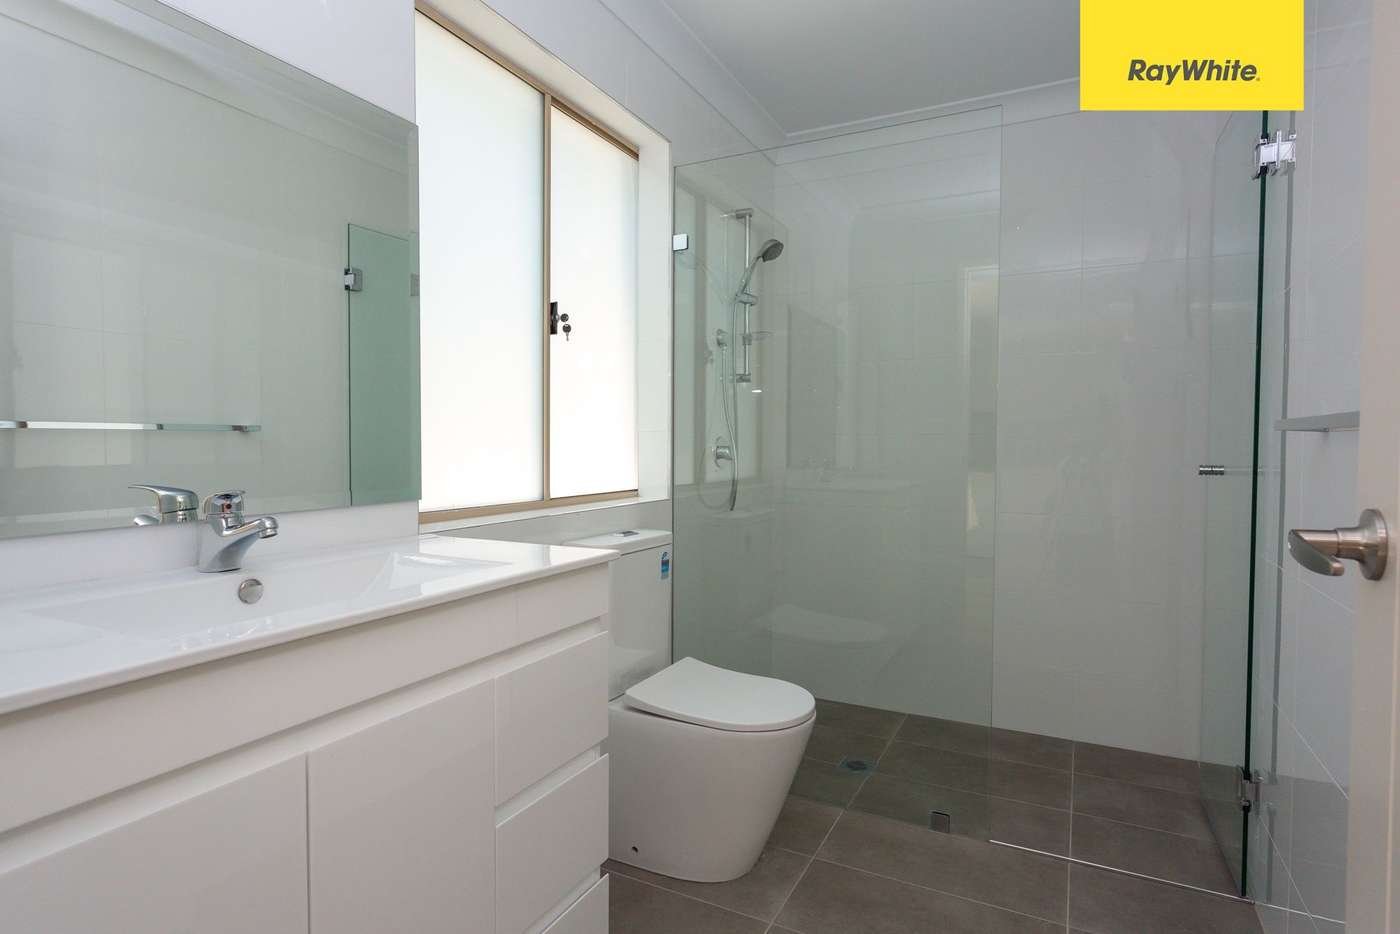 Sixth view of Homely townhouse listing, 2/16-18 Alverstone Street, Riverwood NSW 2210